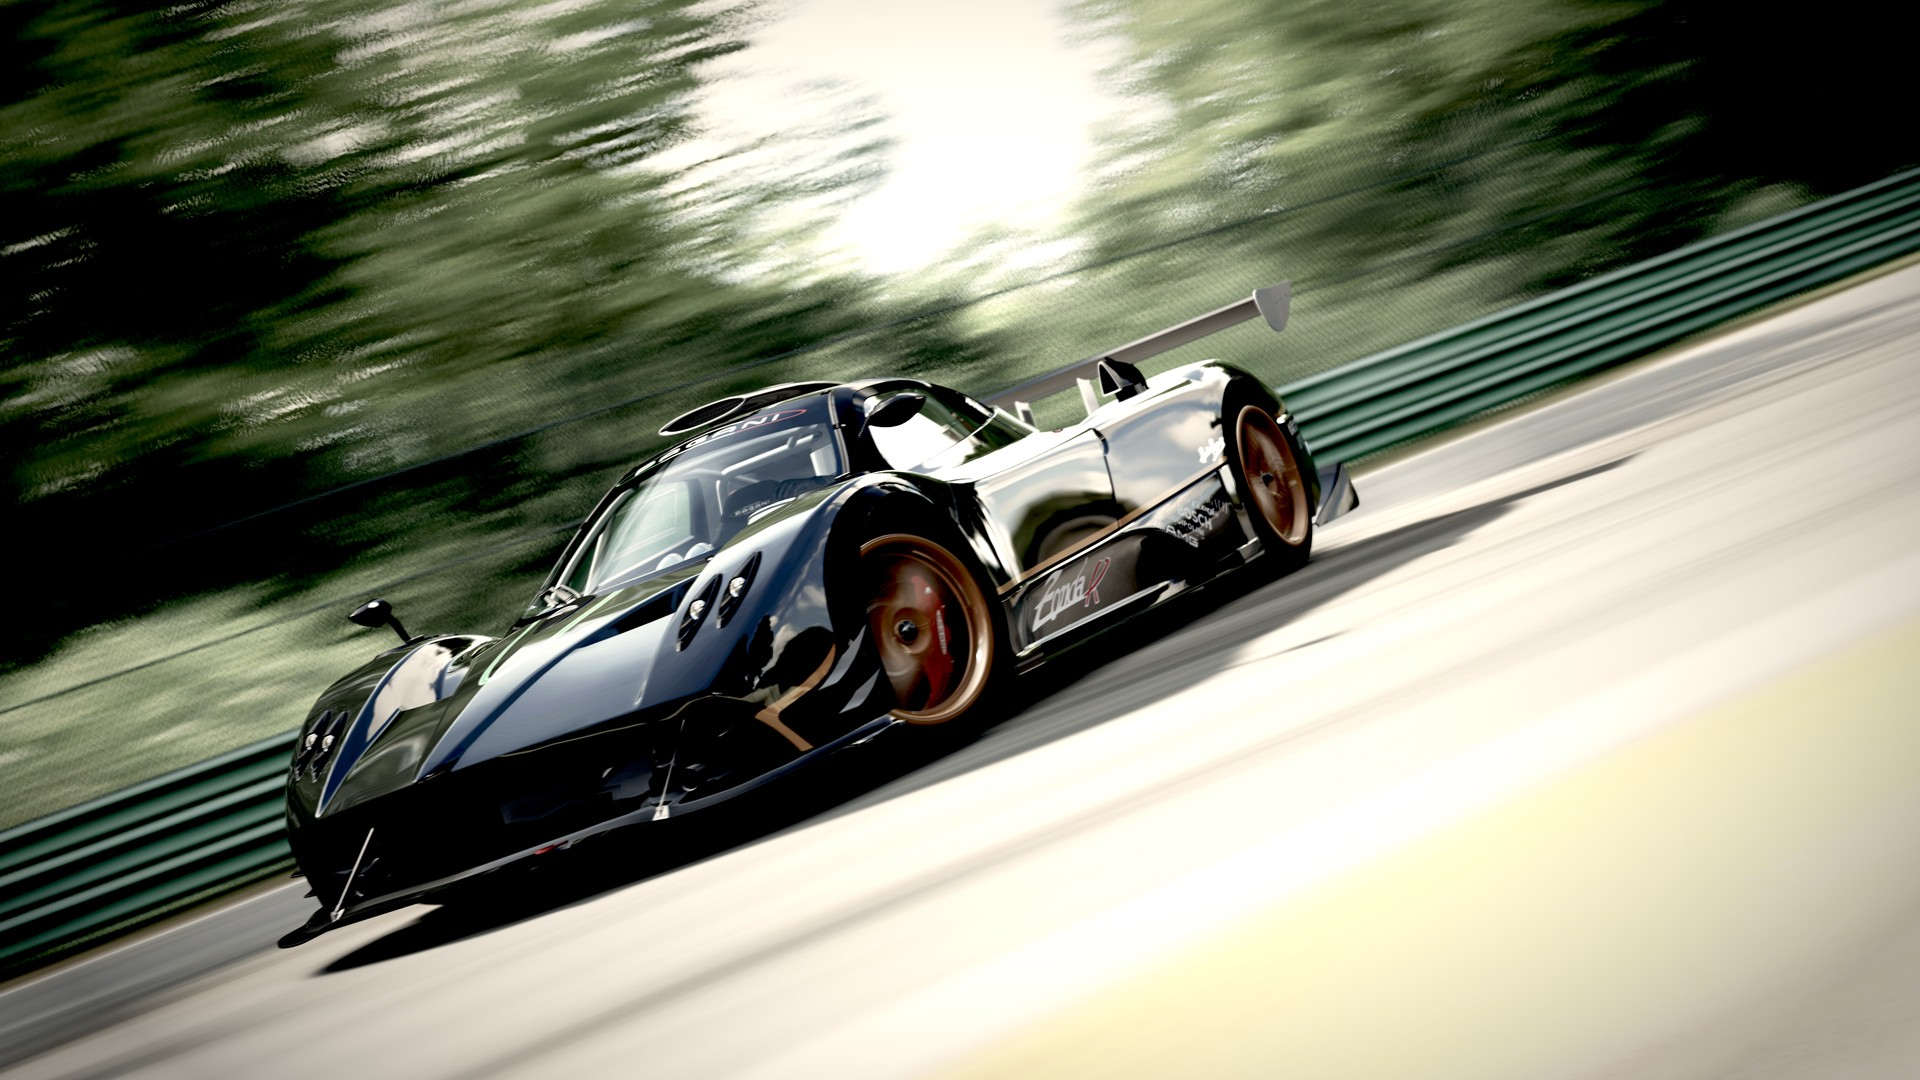 black pagani hd wallpaper 1080p black pagani hd wallpaper 1080p 1920x1080